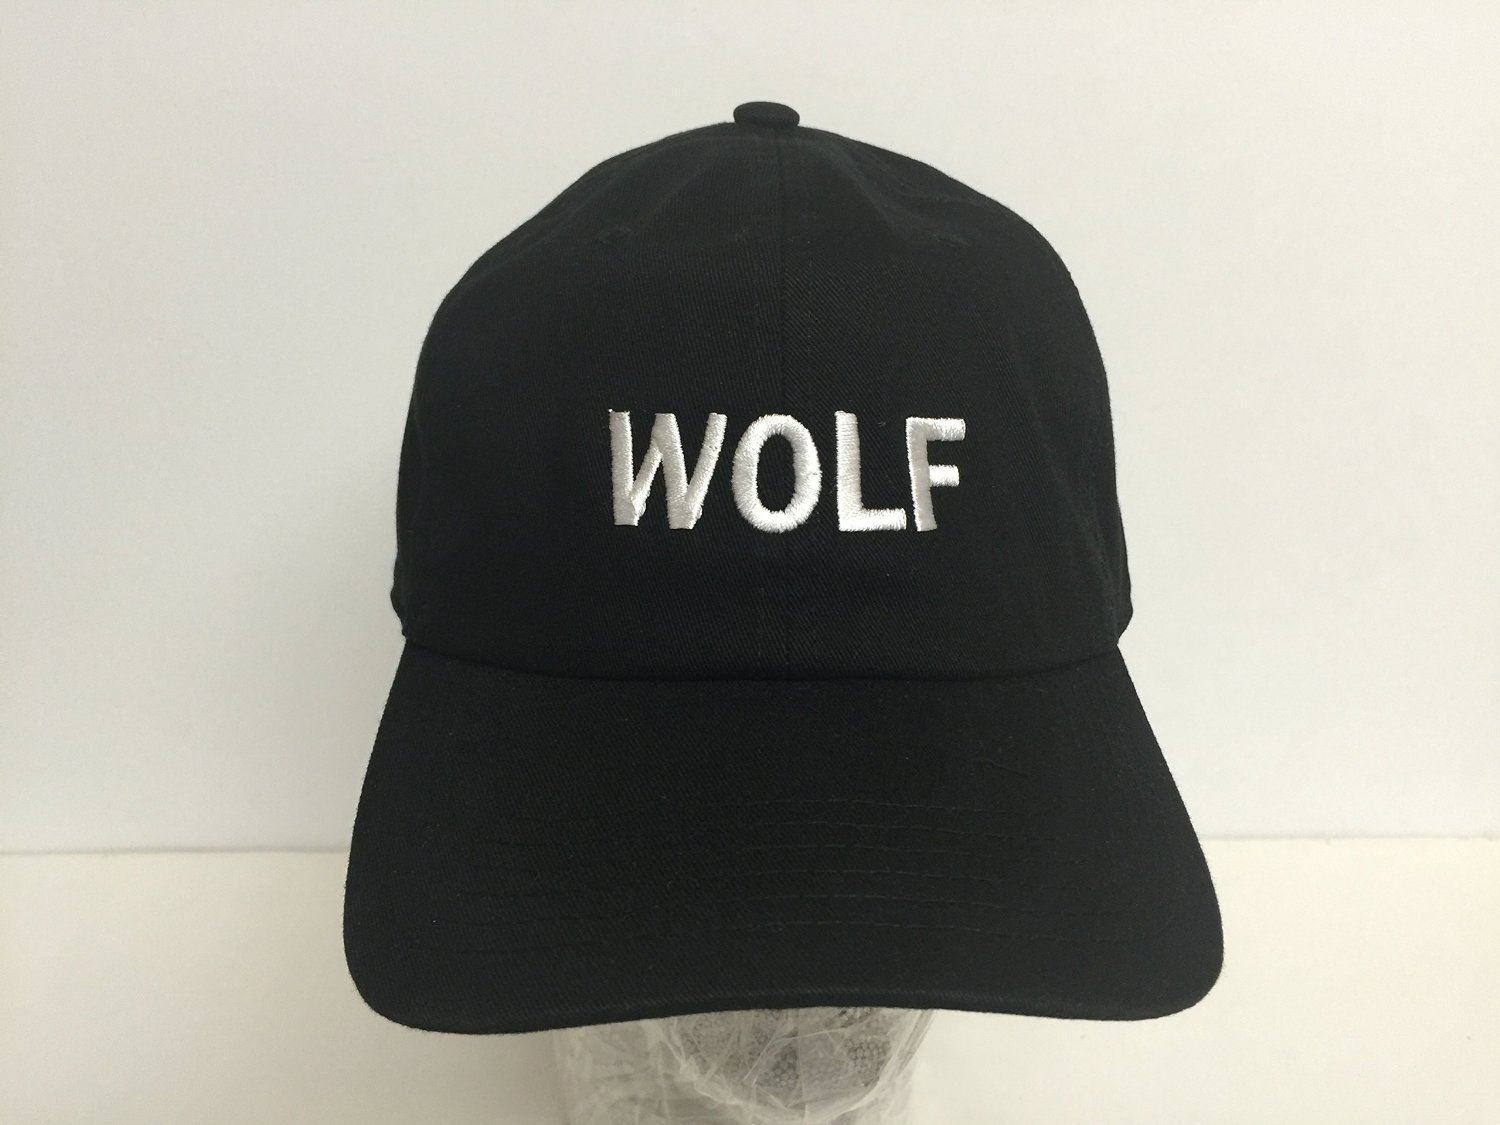 110efea02d4fd9 Wolf Odd future Gang Tyler The Creator Unstructured Adjustable Hat. 13.99. OFWGKTA  Odd Future Golf Wang ...